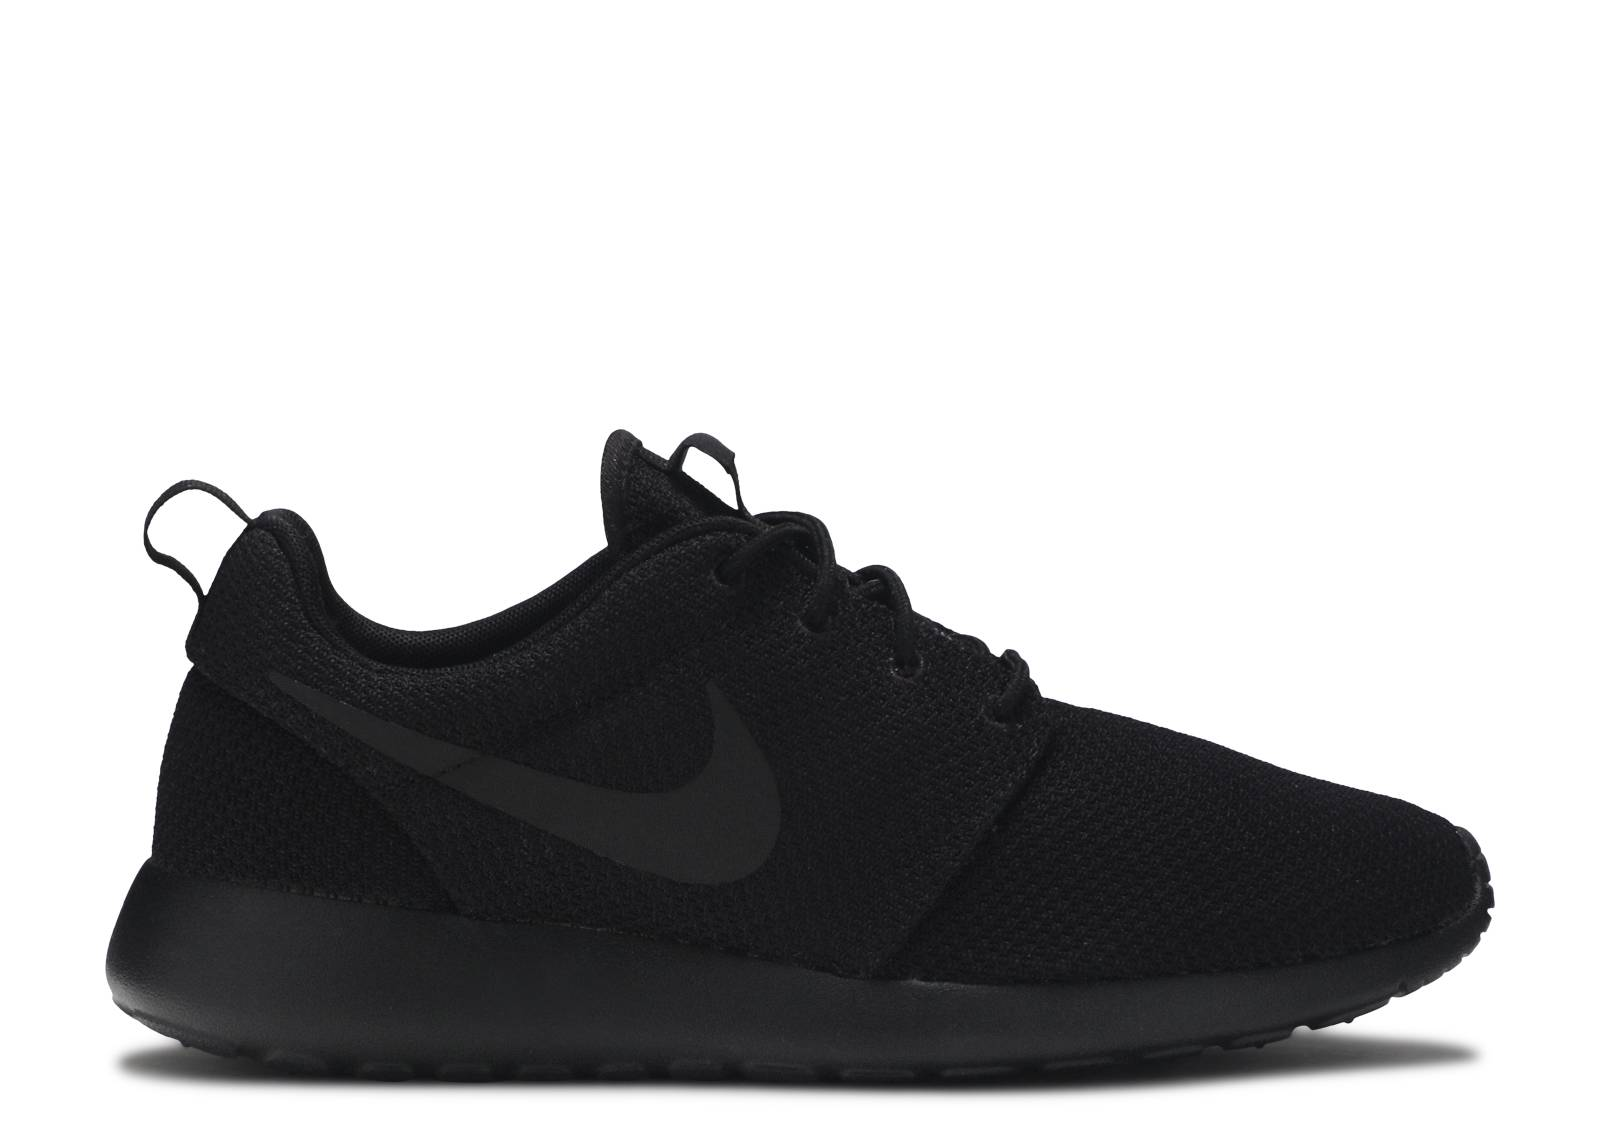 mens nike roshe for sale. Results Free Shipping on many items across the worlds largest range of Nike Men's Nike Roshe. Enjoy free shipping and returns with NikePlus.